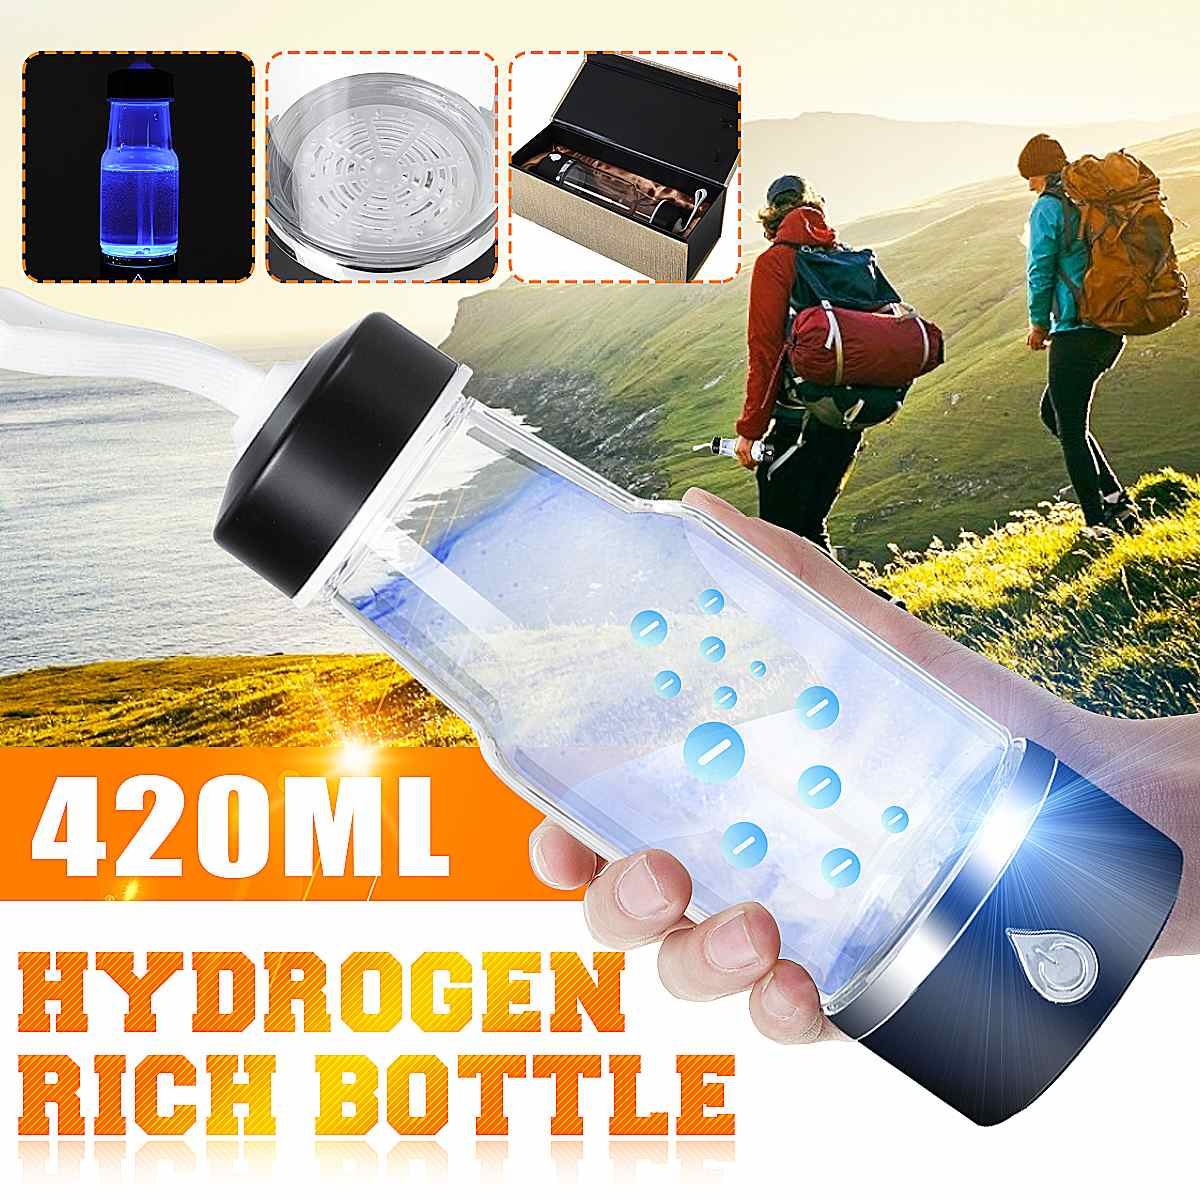 Becornce 3min Portable Hydrogen-Rich Water Cup Ionizer Maker/Generator Super Antioxidants ORP Hydrogen Bottle 420ml Rechargeable